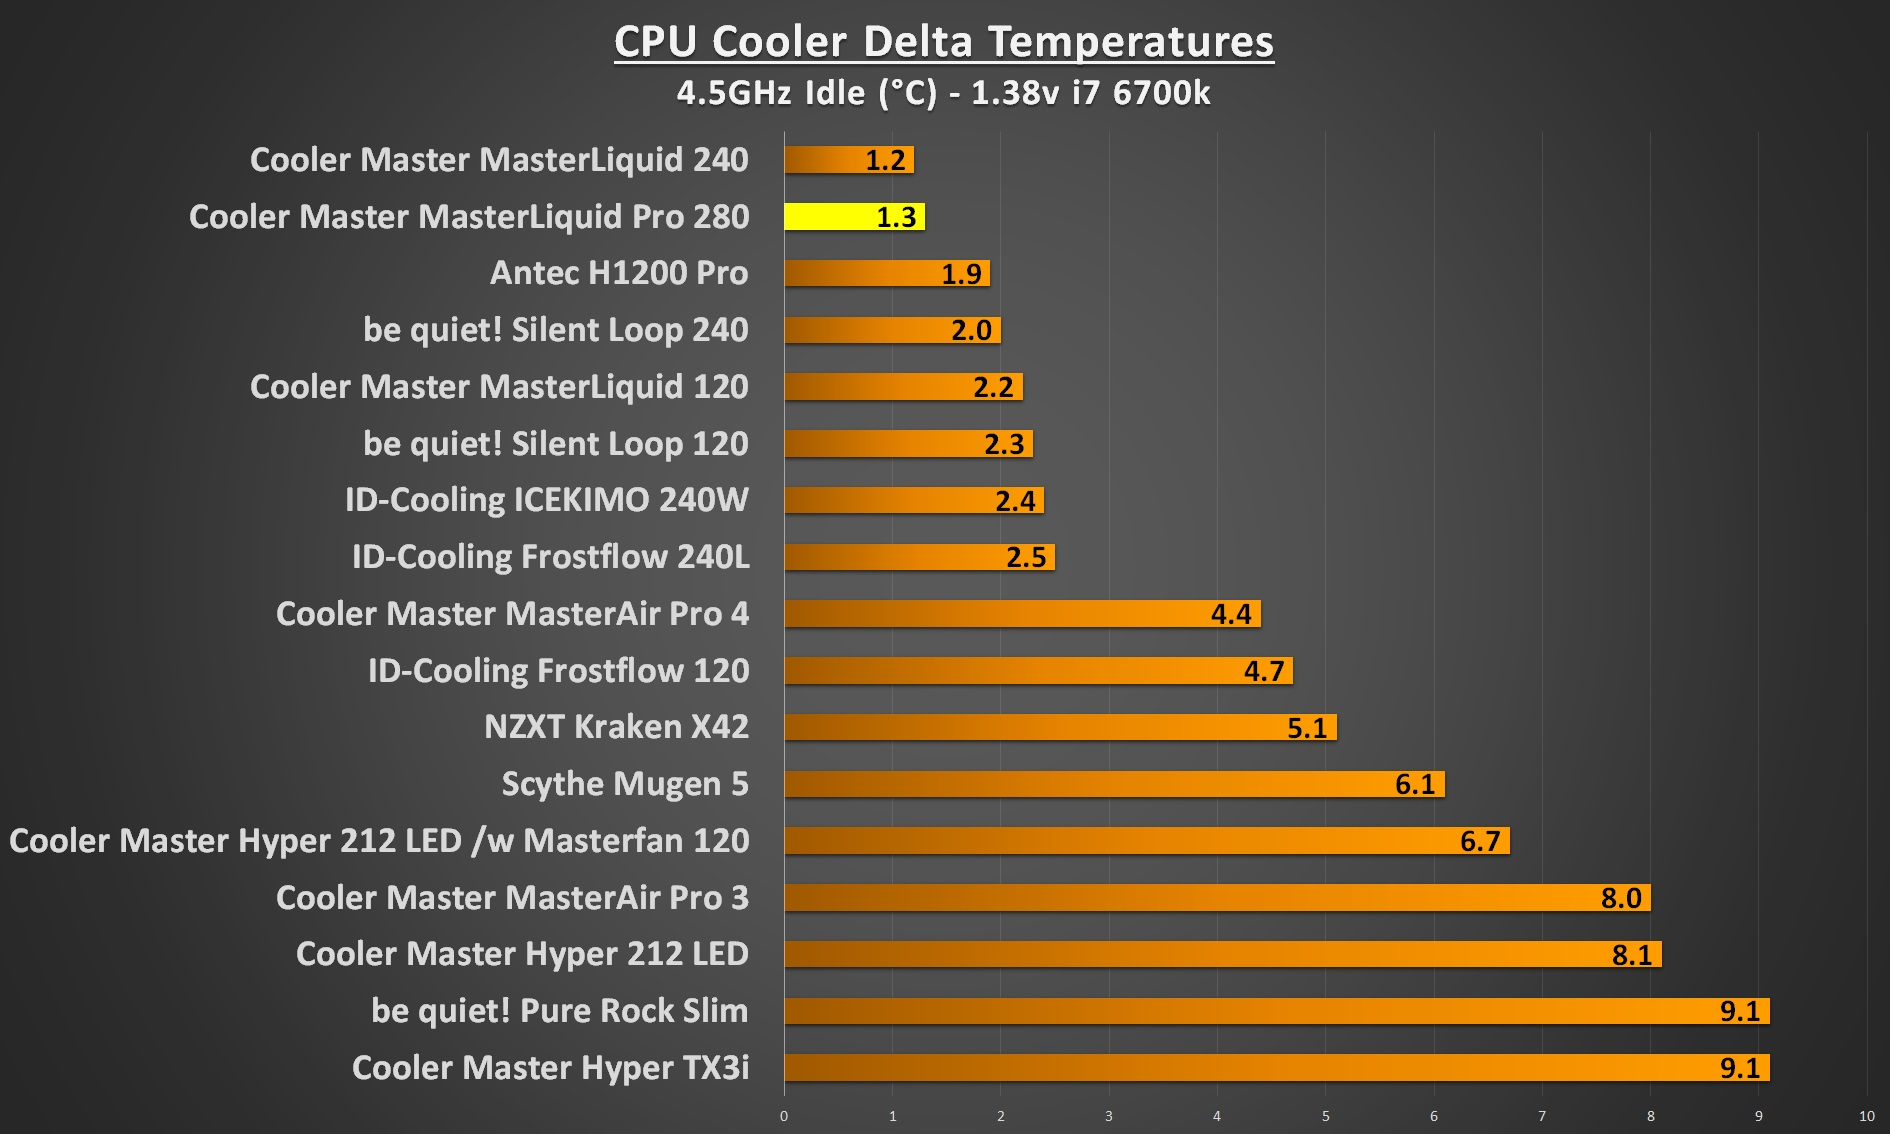 cooler master masterliquid pro 280 4.5Ghz idle